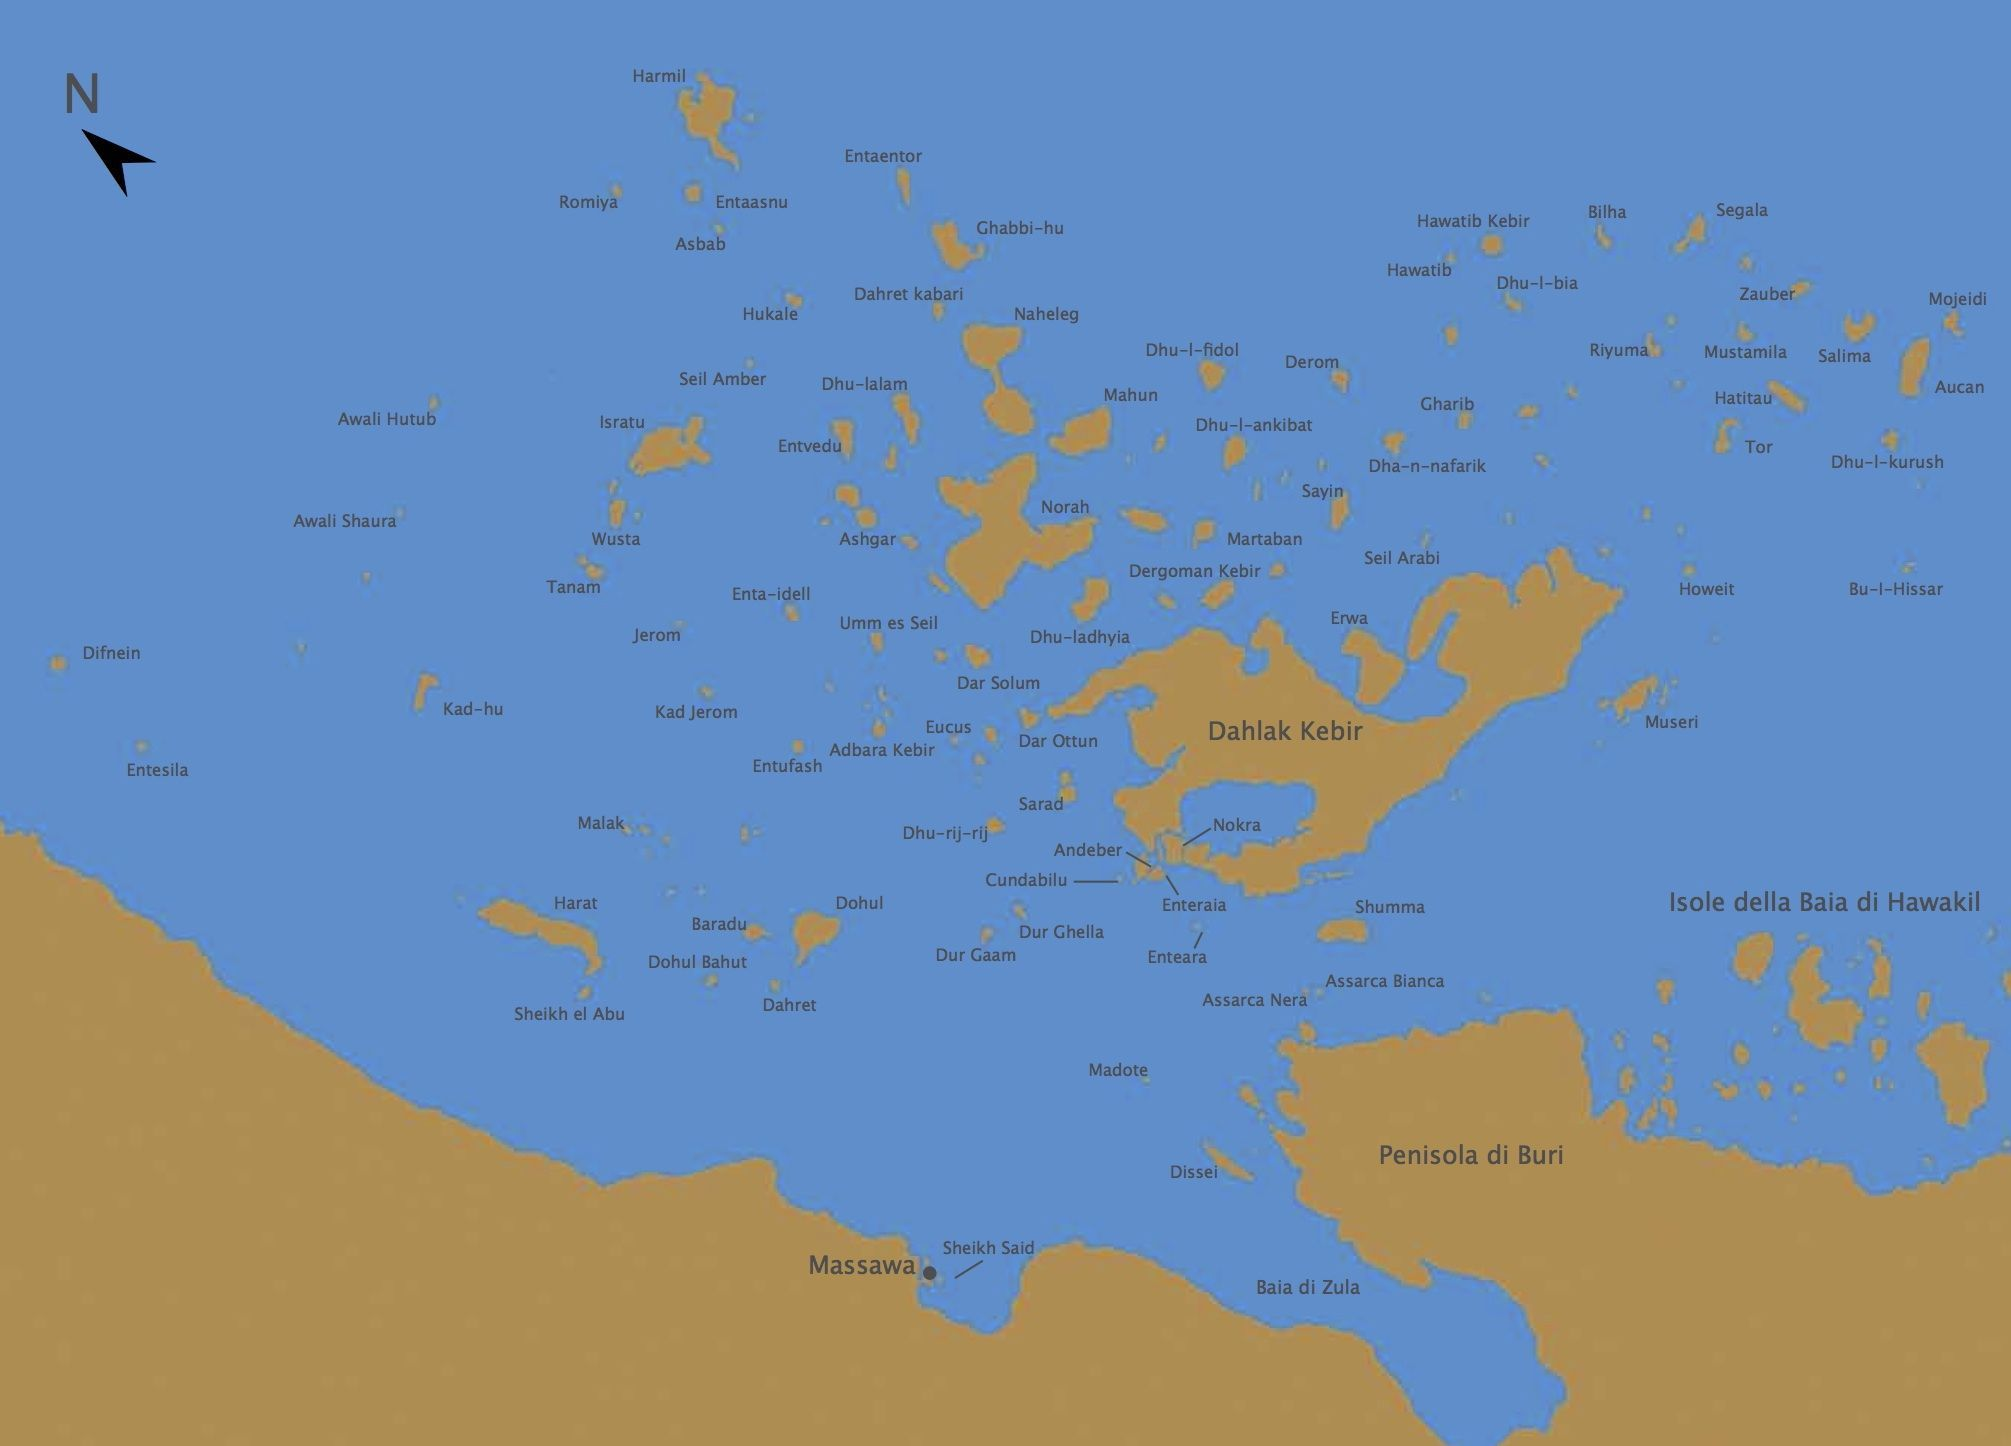 350 small and large Islands of Eritrea The Largest Island is called